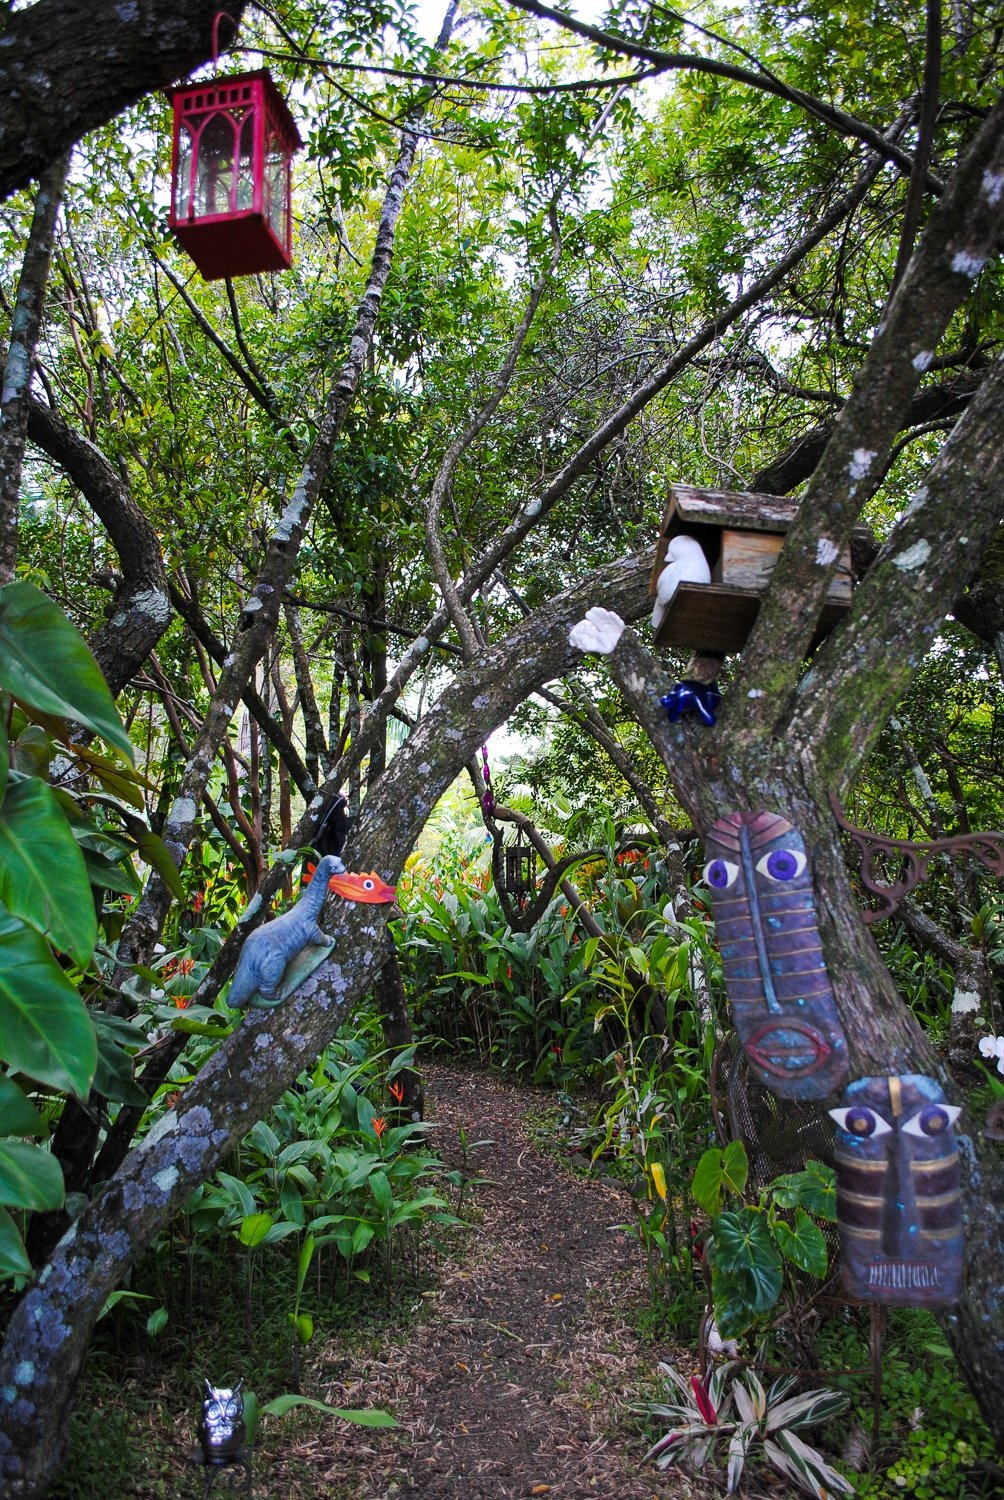 The whimsical Kula Botanic Garden on the Road to Hana in Maui